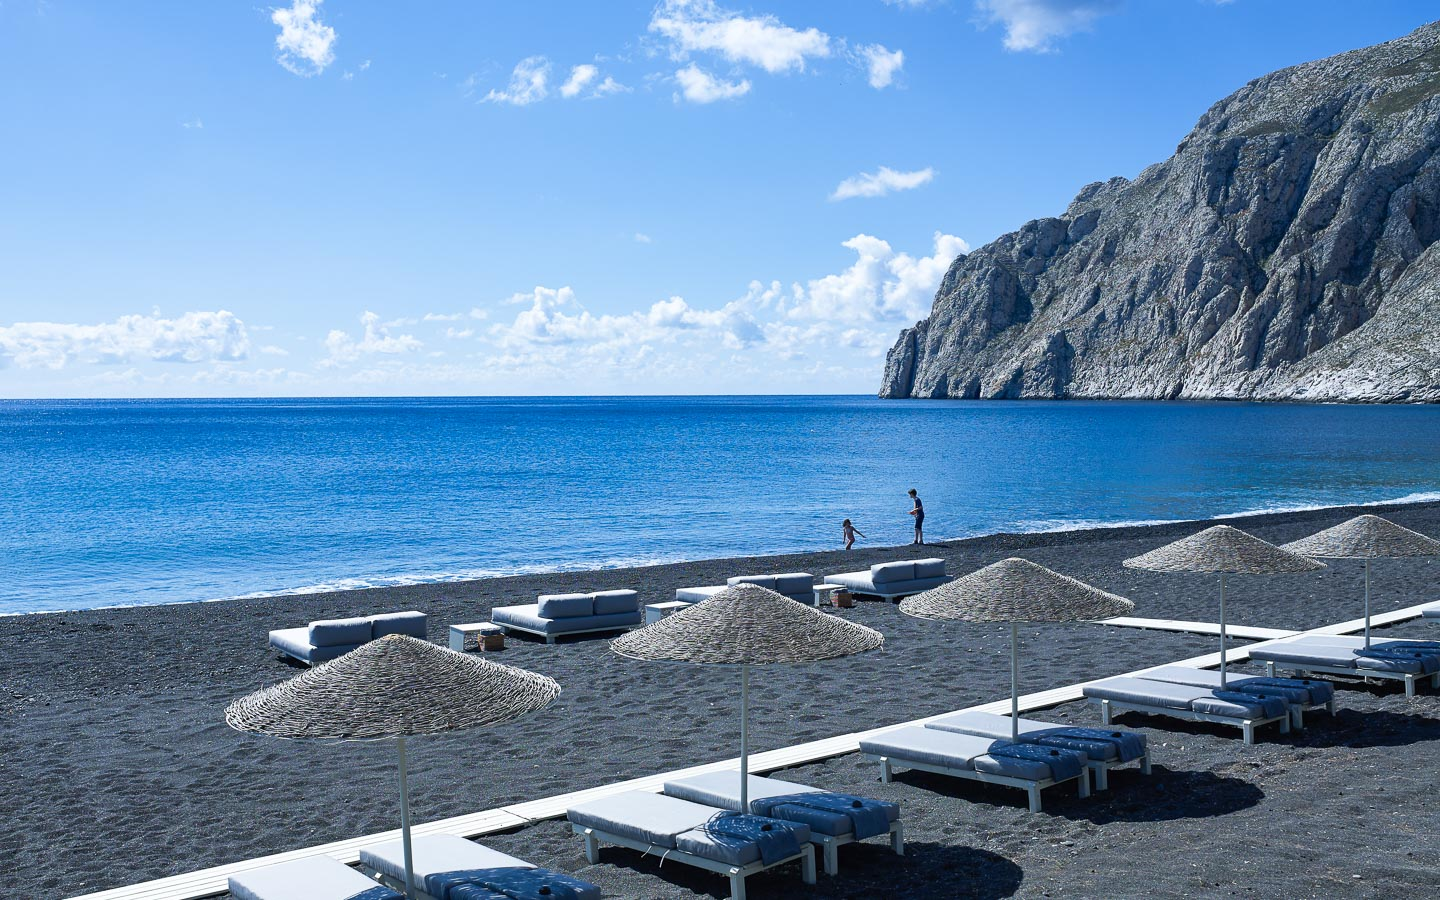 Sunbeds and umbrellas on the beach in Santorini. Crystal clear sea and imposing rocks.